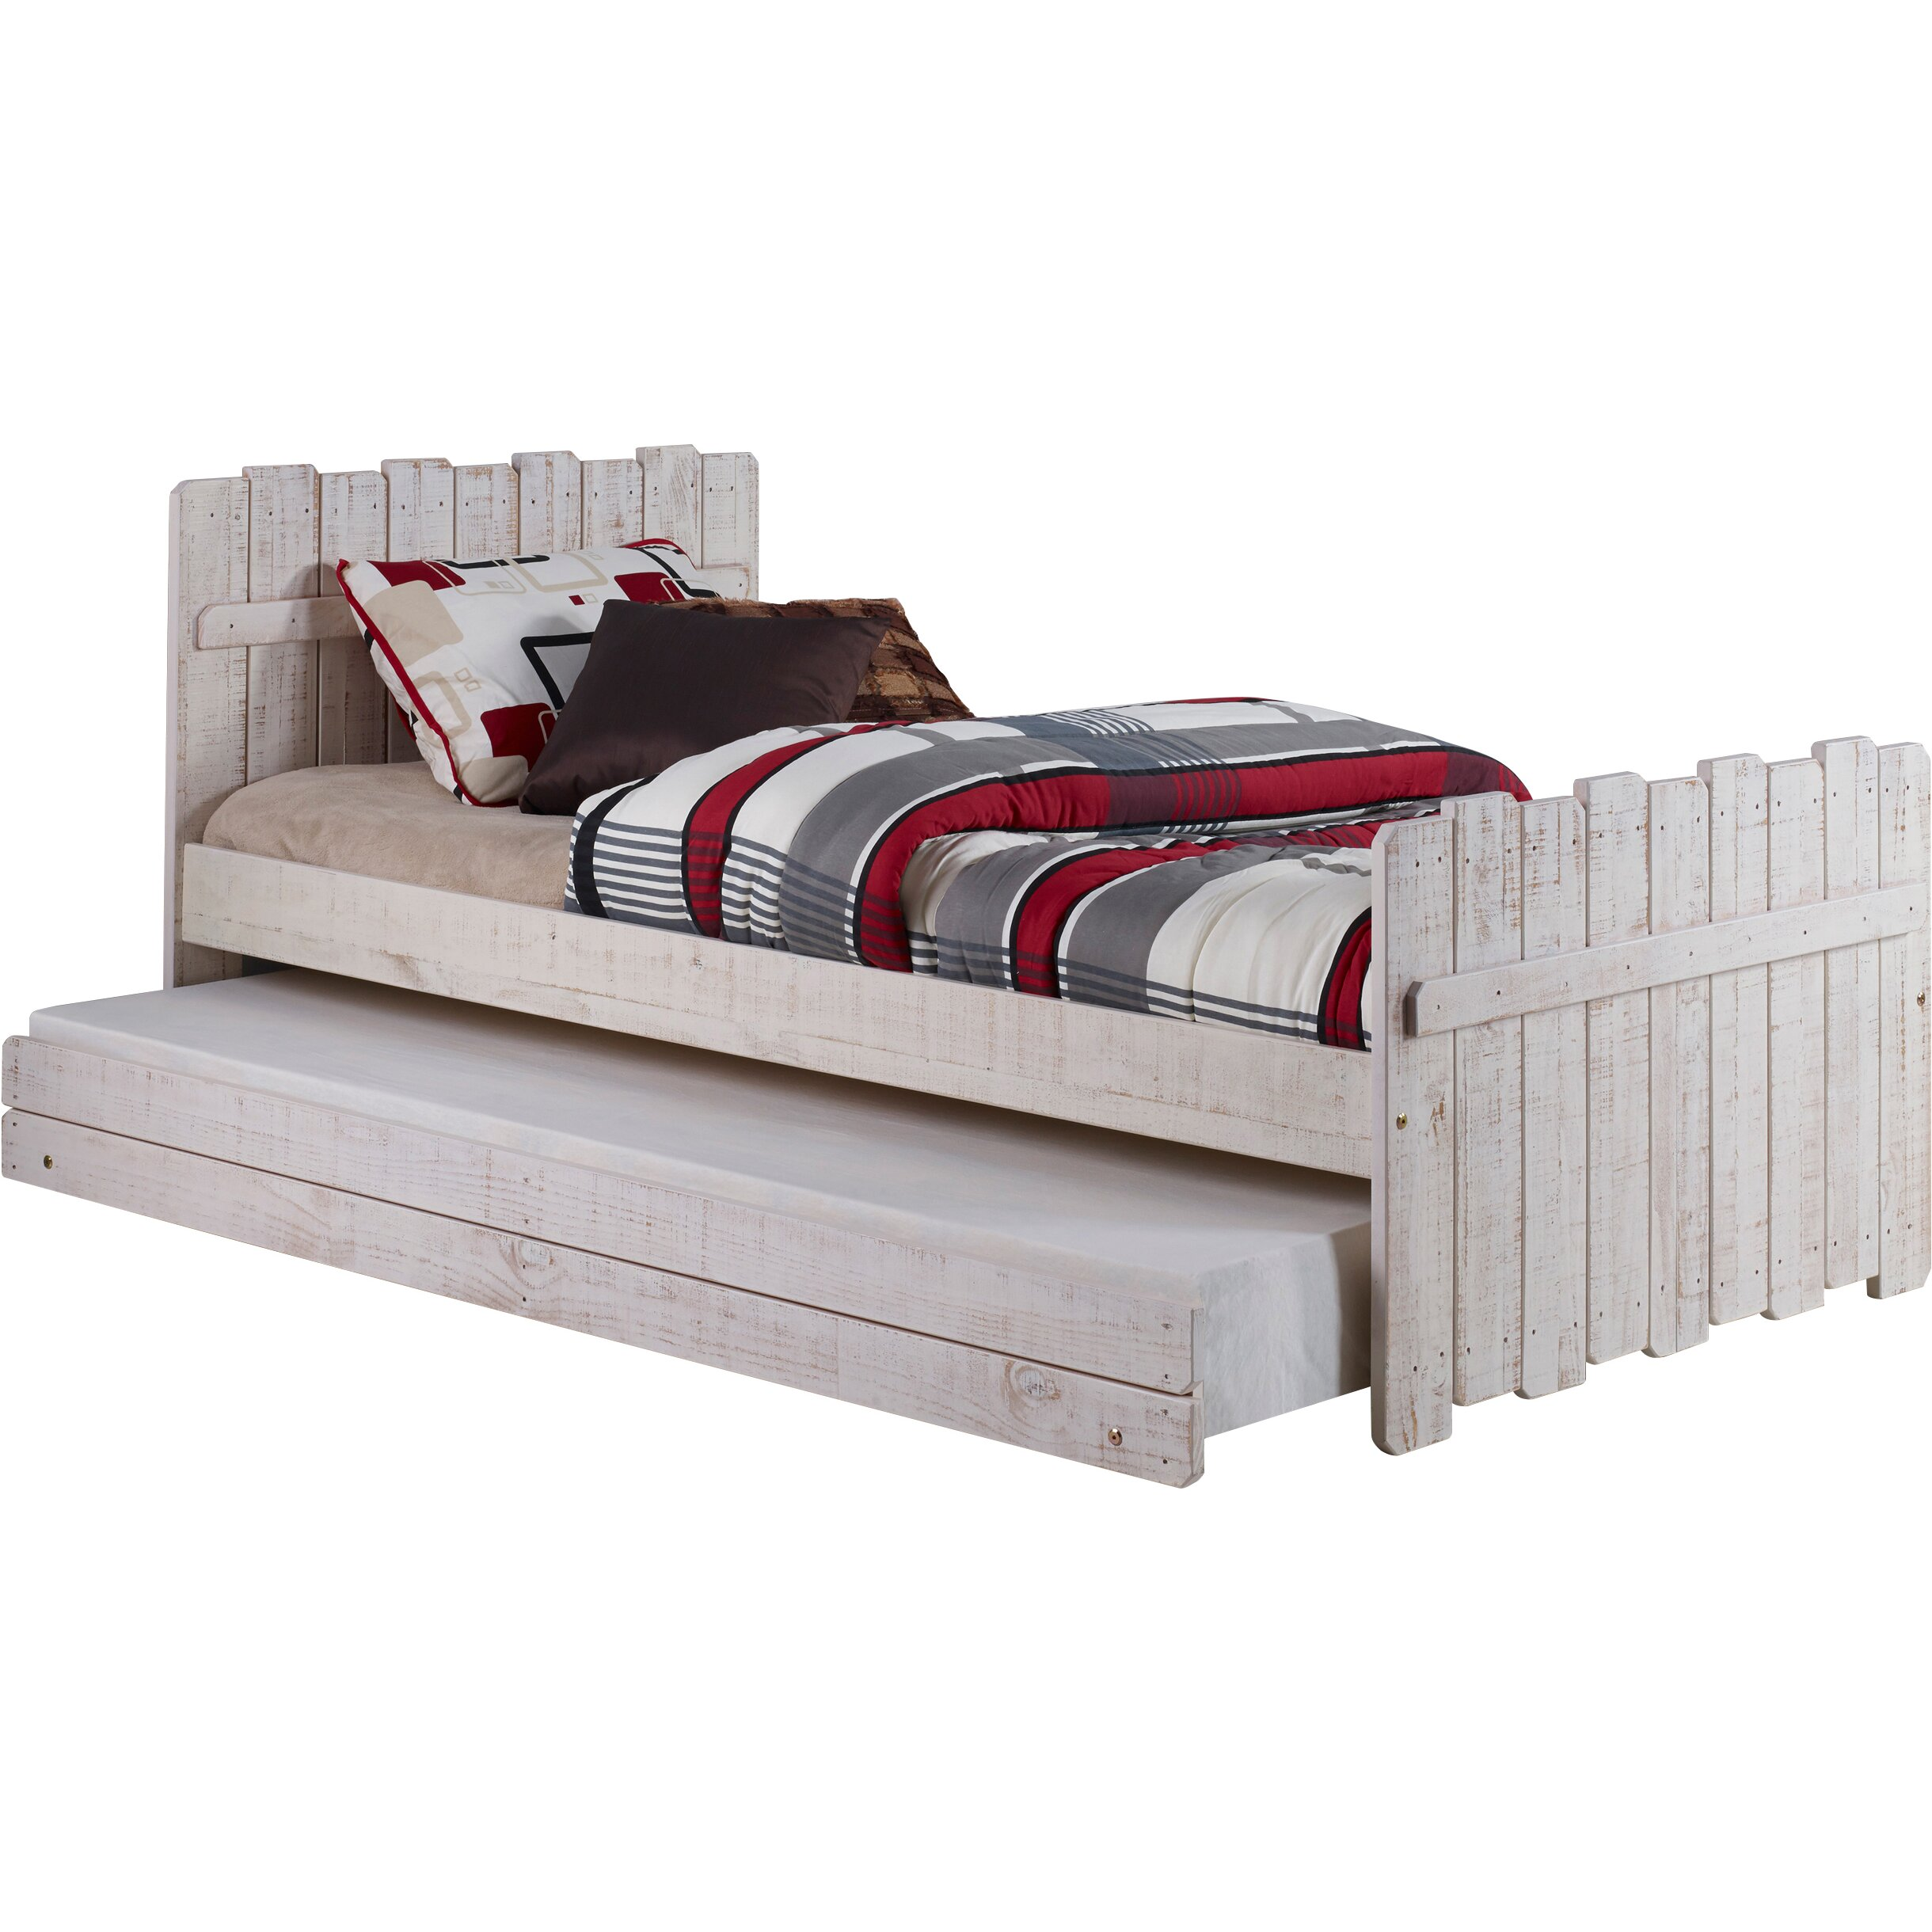 Donco Twin Bed Review